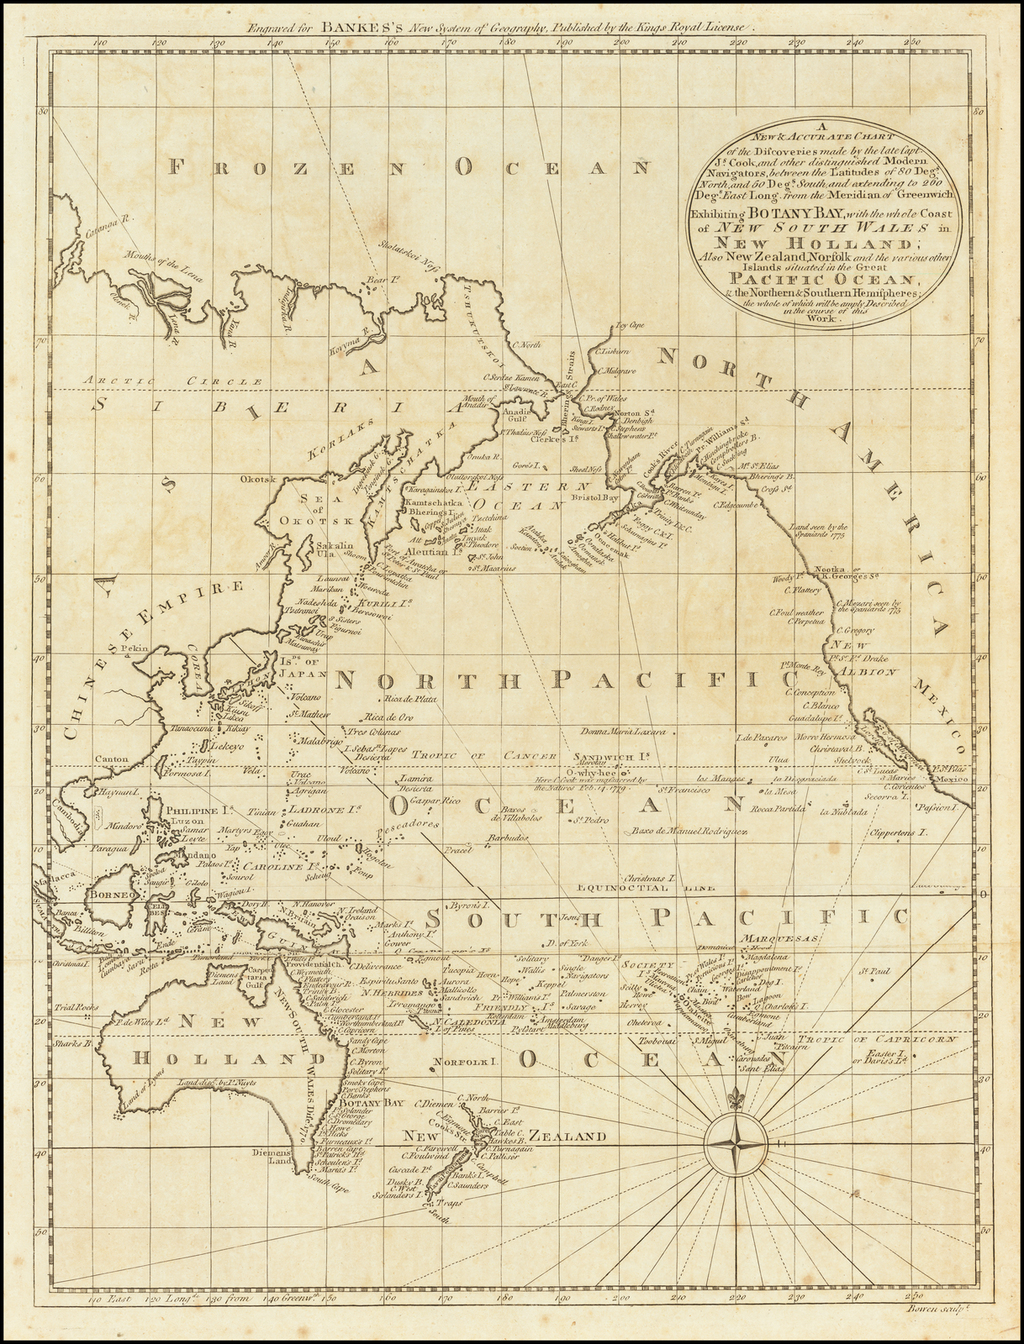 A New & Accurate Chart of the Discoveries made by the late Capt. Js. Cook, and other distinguished Modern Navigators . . . Exhibiting Botany Bay, with the whole Coast of New South Wales in New Holland; Also New Zealand,, Norfolk and the various other Islands situated in the Great Pacific . . .  By Emanuel Bowen